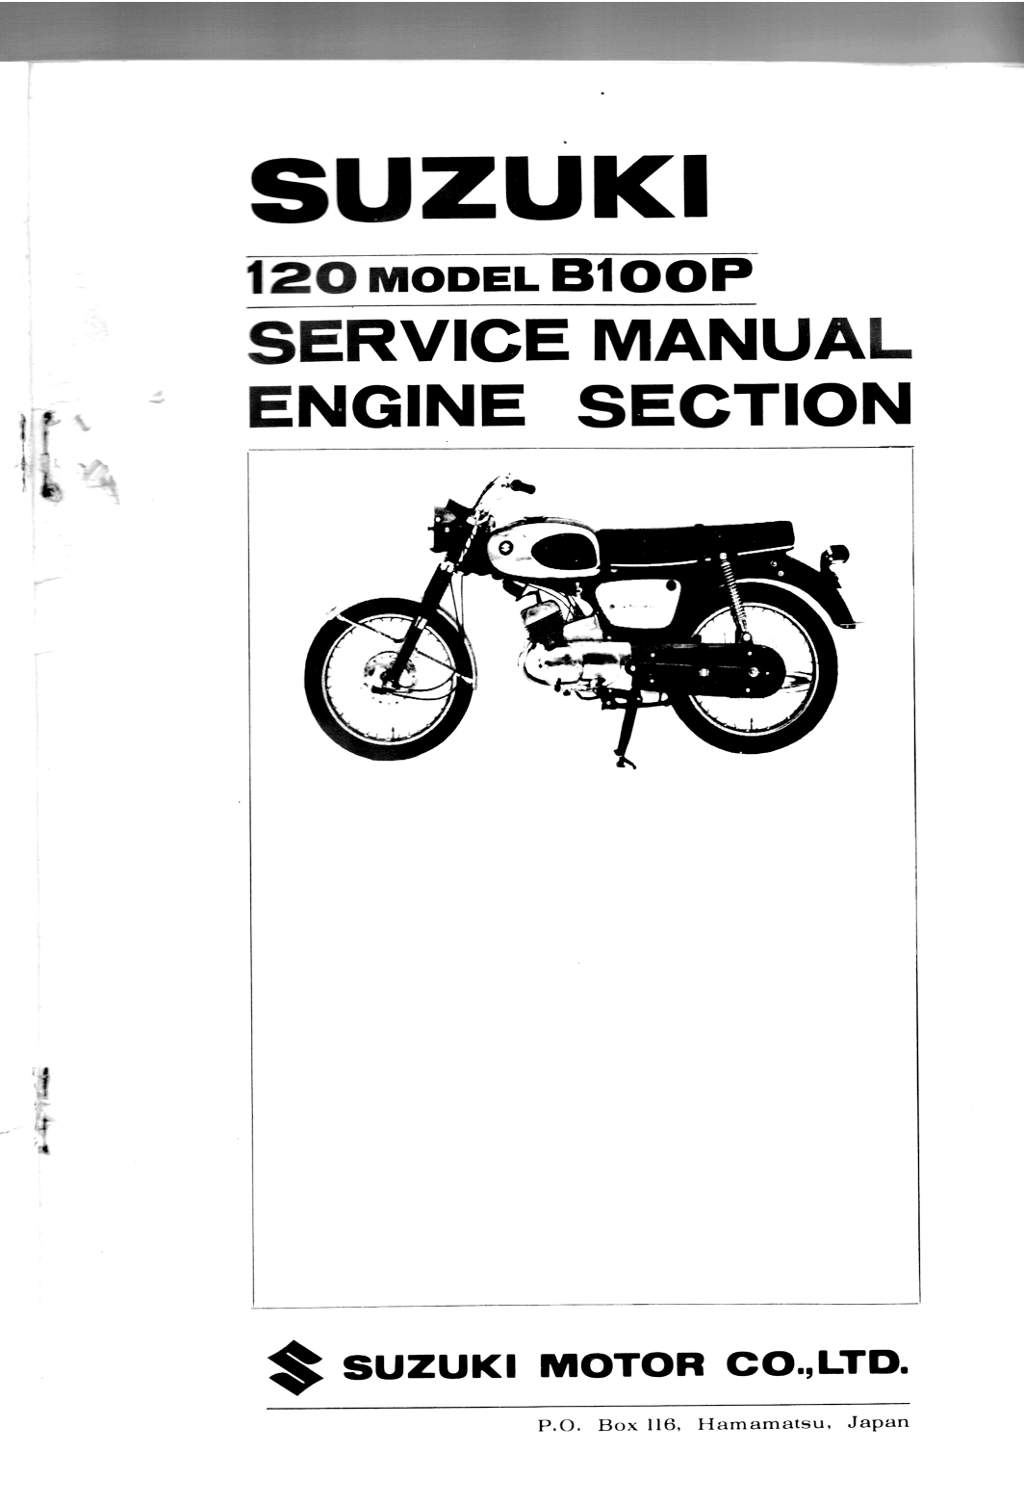 Suzuki B100, B100P and B105P Service Manual